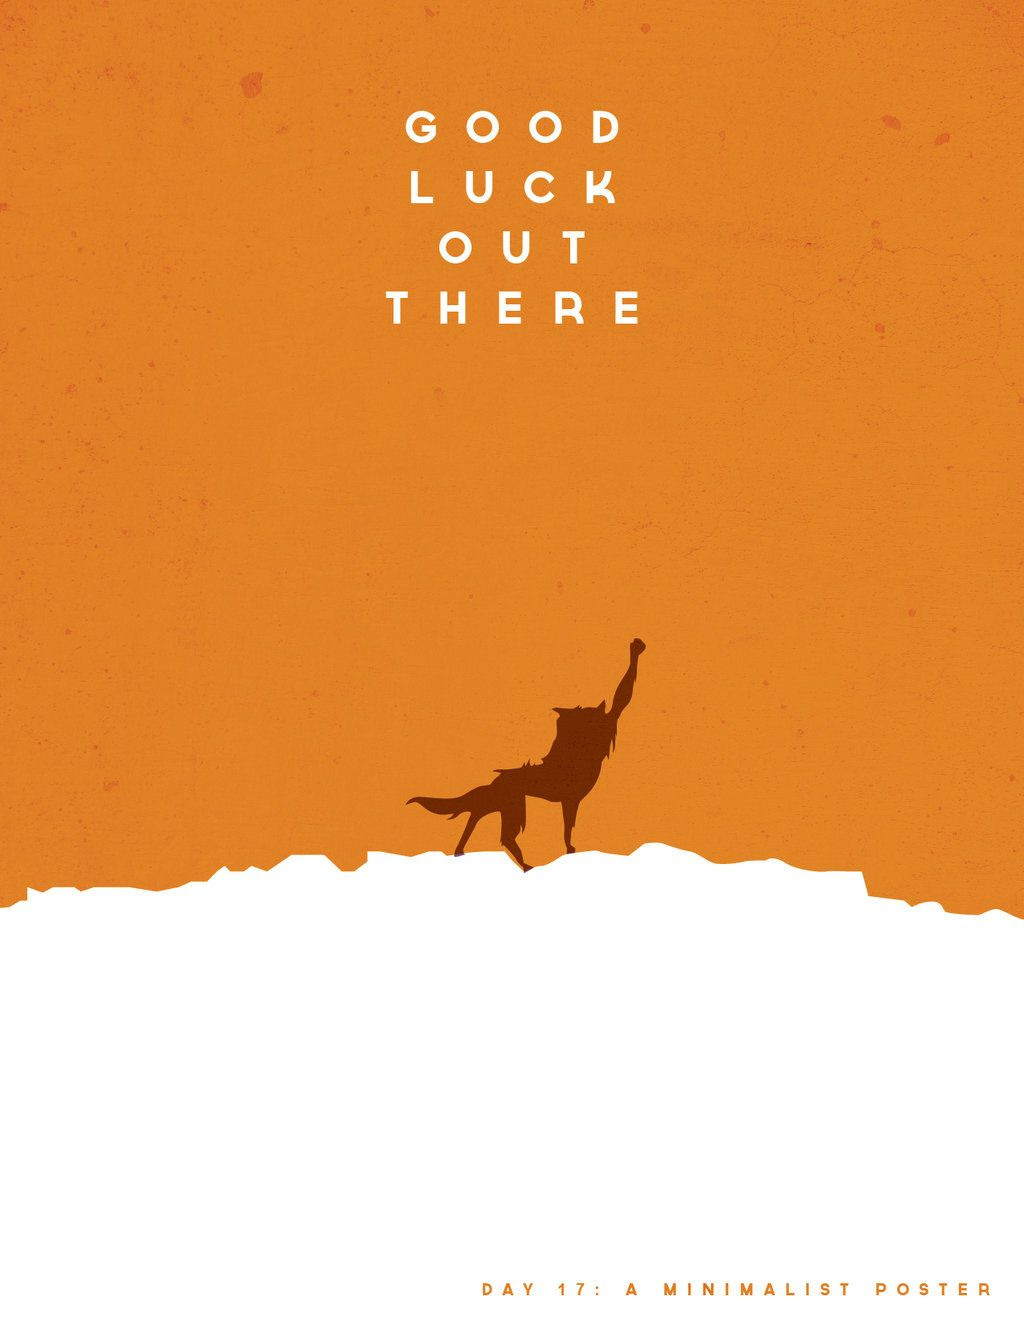 Fantastic Mr Fox Minimalist Poster Want To Frame This And Hang It Up From One Of My Favorite Bo Fantastic Mr Fox Fantastic Mr Fox Wolf Wes Anderson Movies